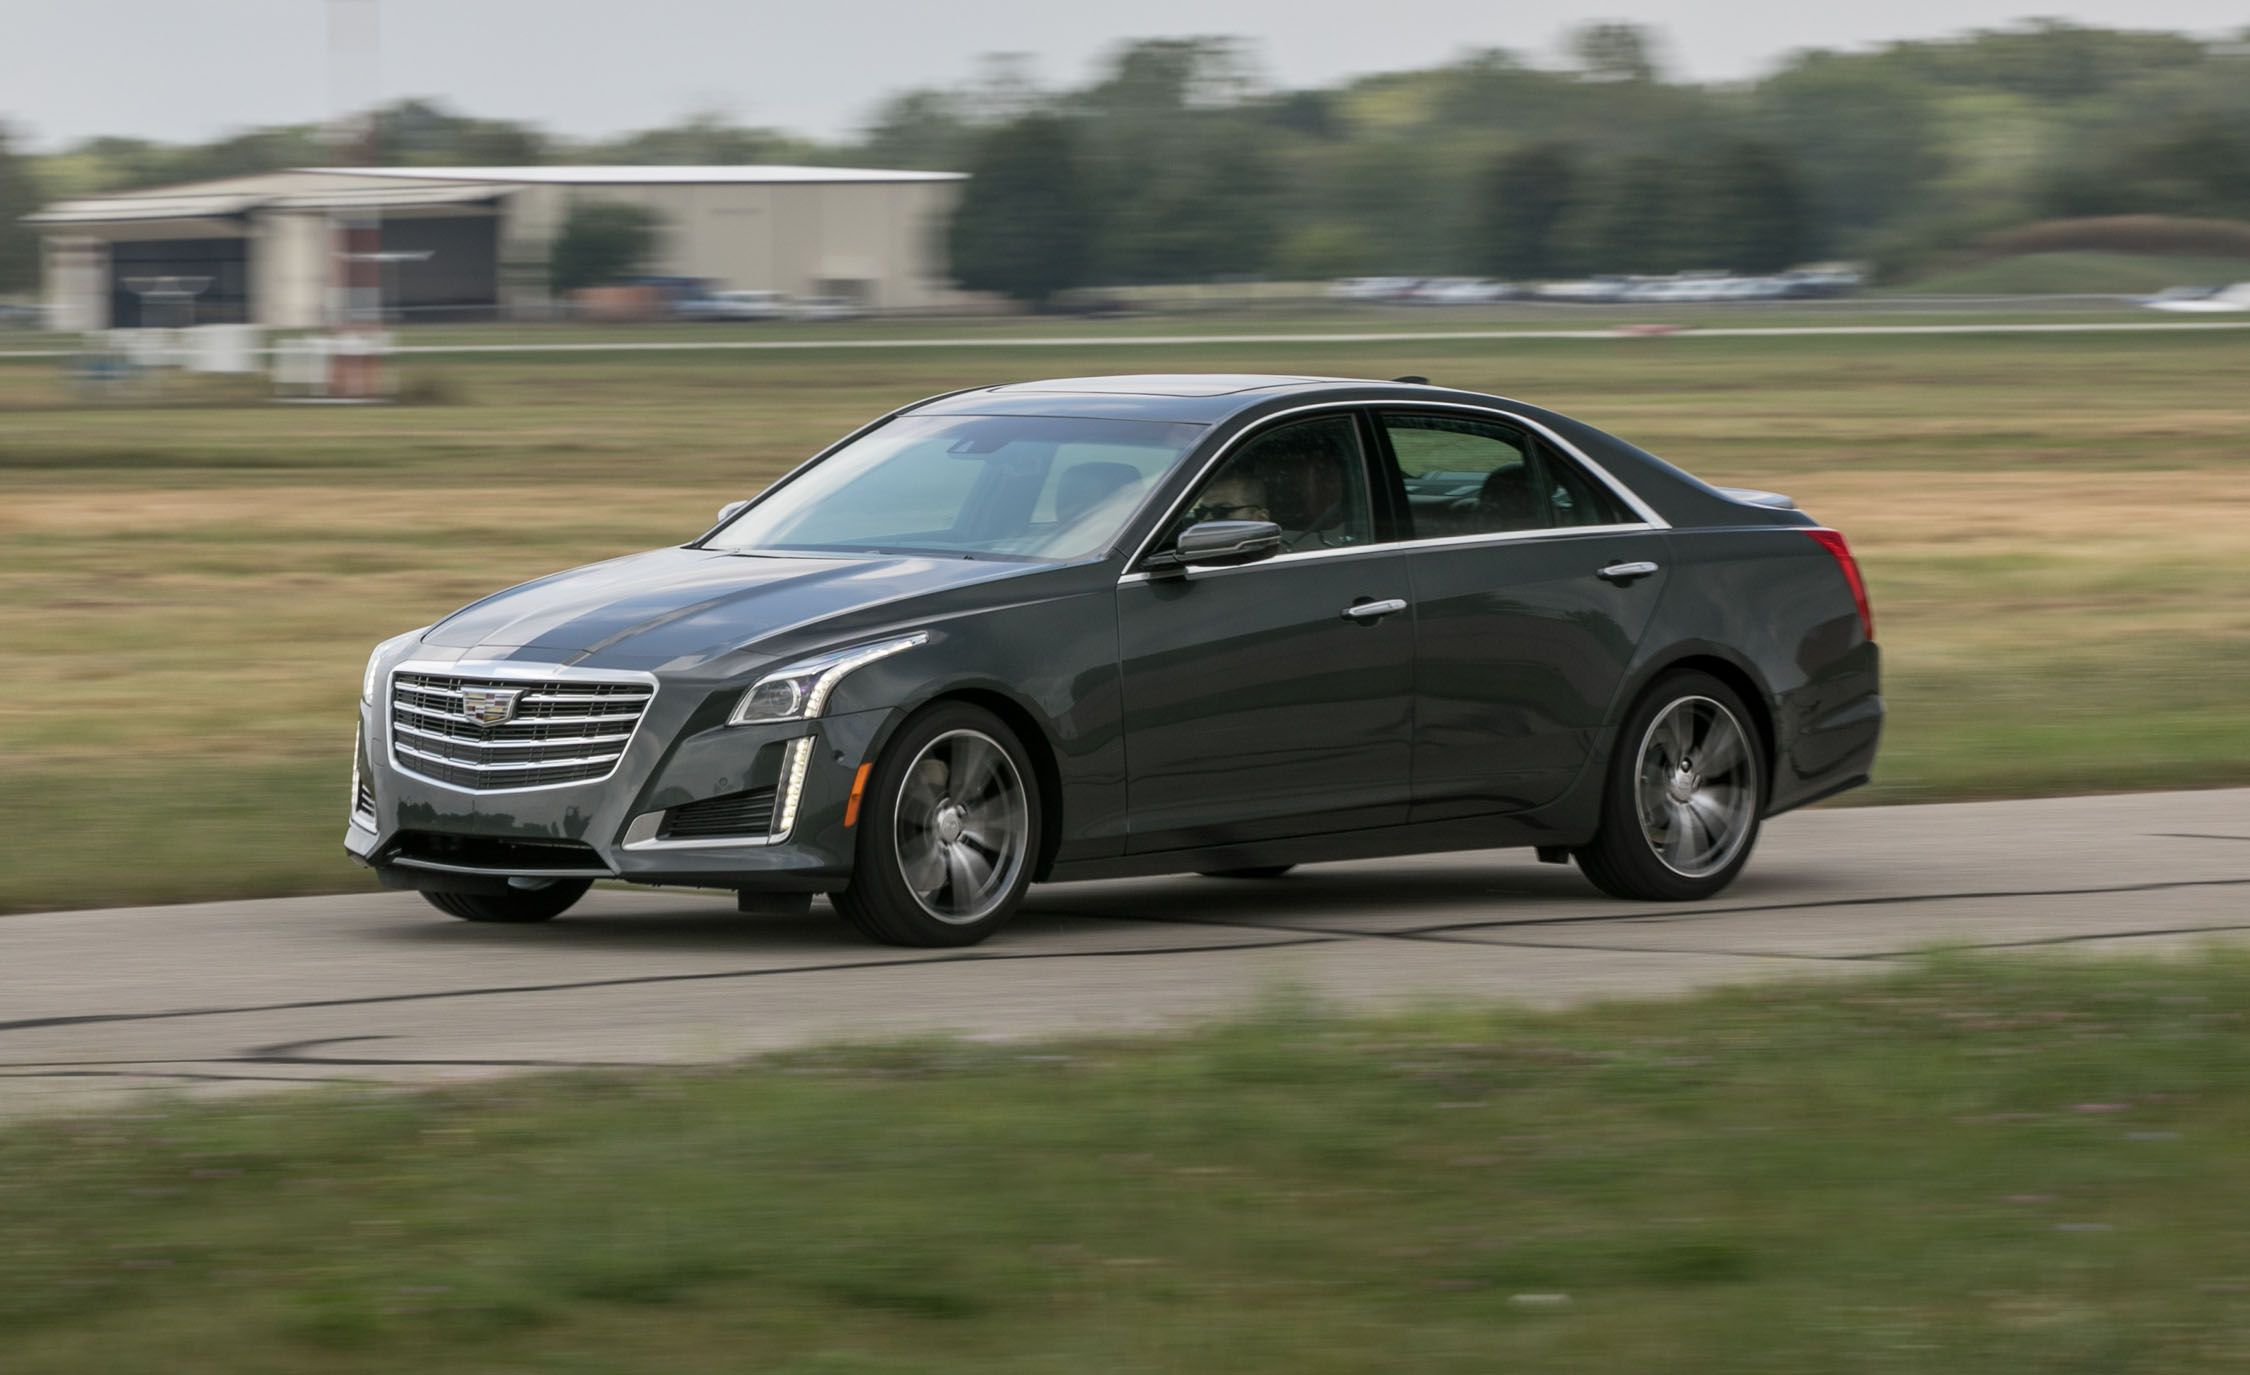 Used CADILLAC CTS Engines Low Miles